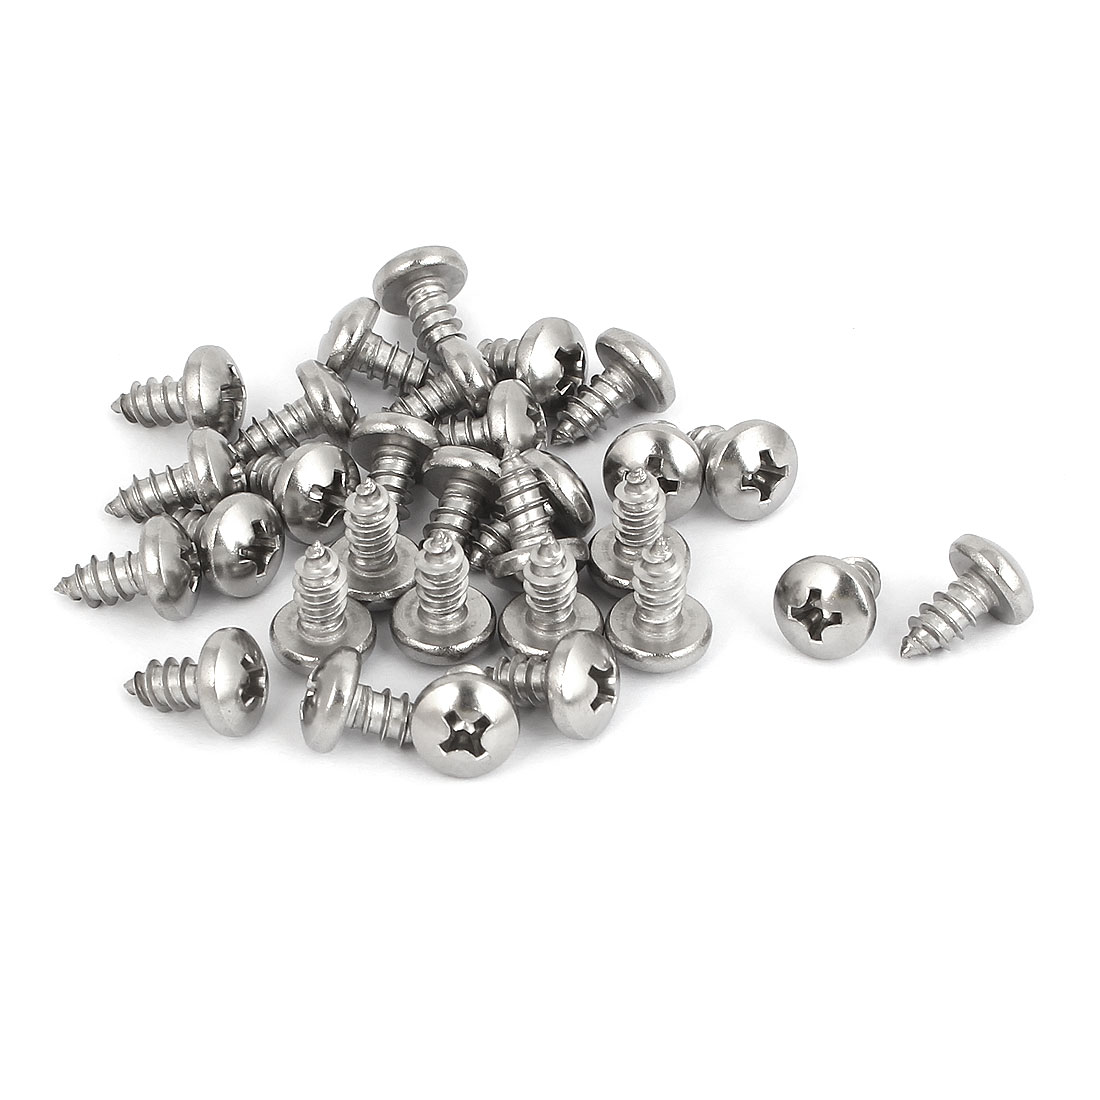 M4.8x9.5mm 316 Stainless Steel Phillips Round Pan Head Self Tapping Screws 30pcs